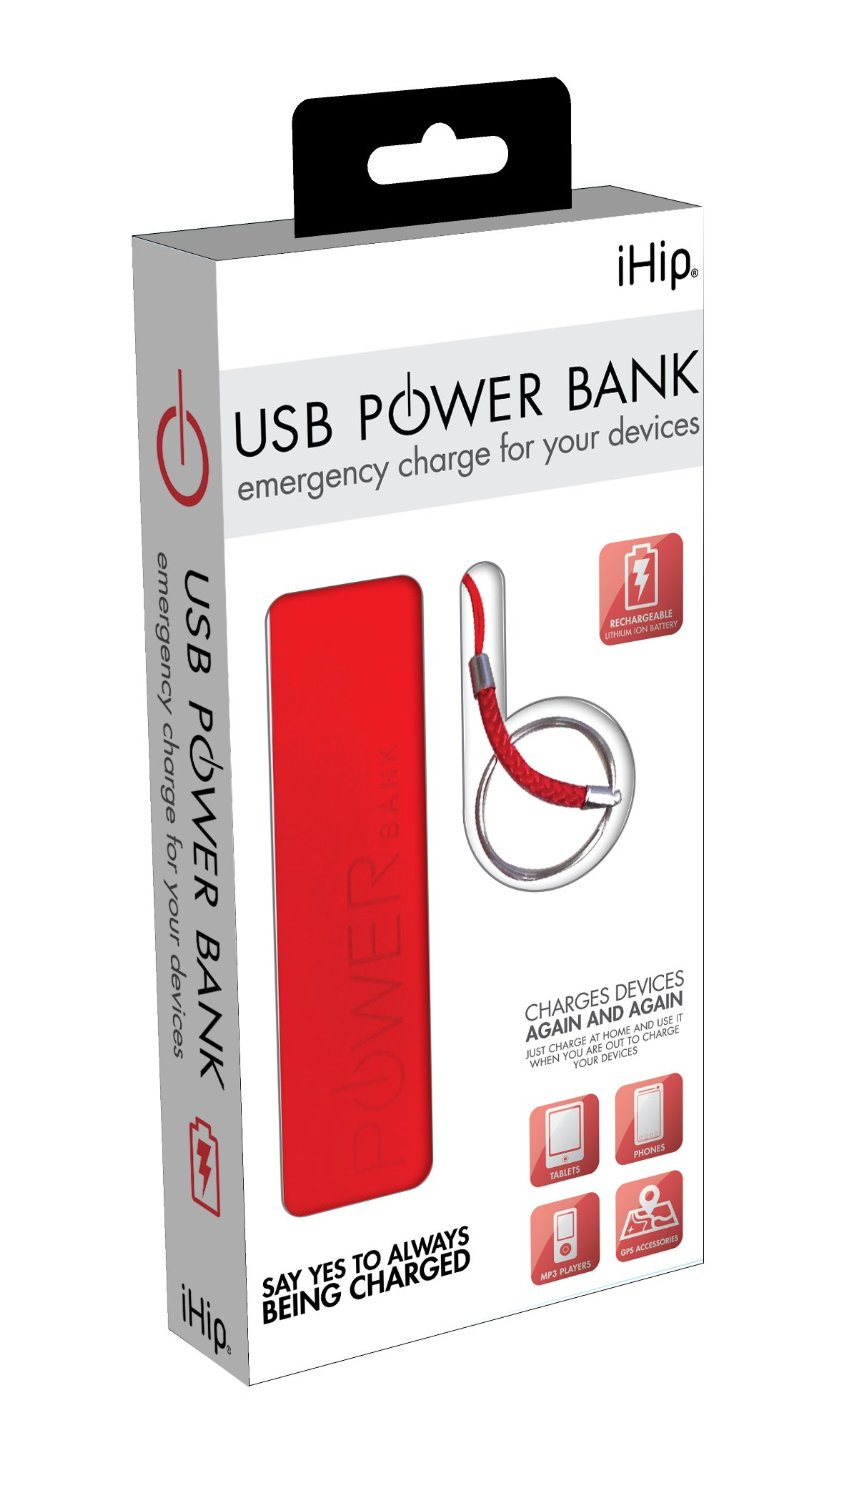 iHip 2500mAh Universal Mobile Micro USB Power Bank portable device charger for iPhone, iPod, Galaxy Smartphones, tablets, etc